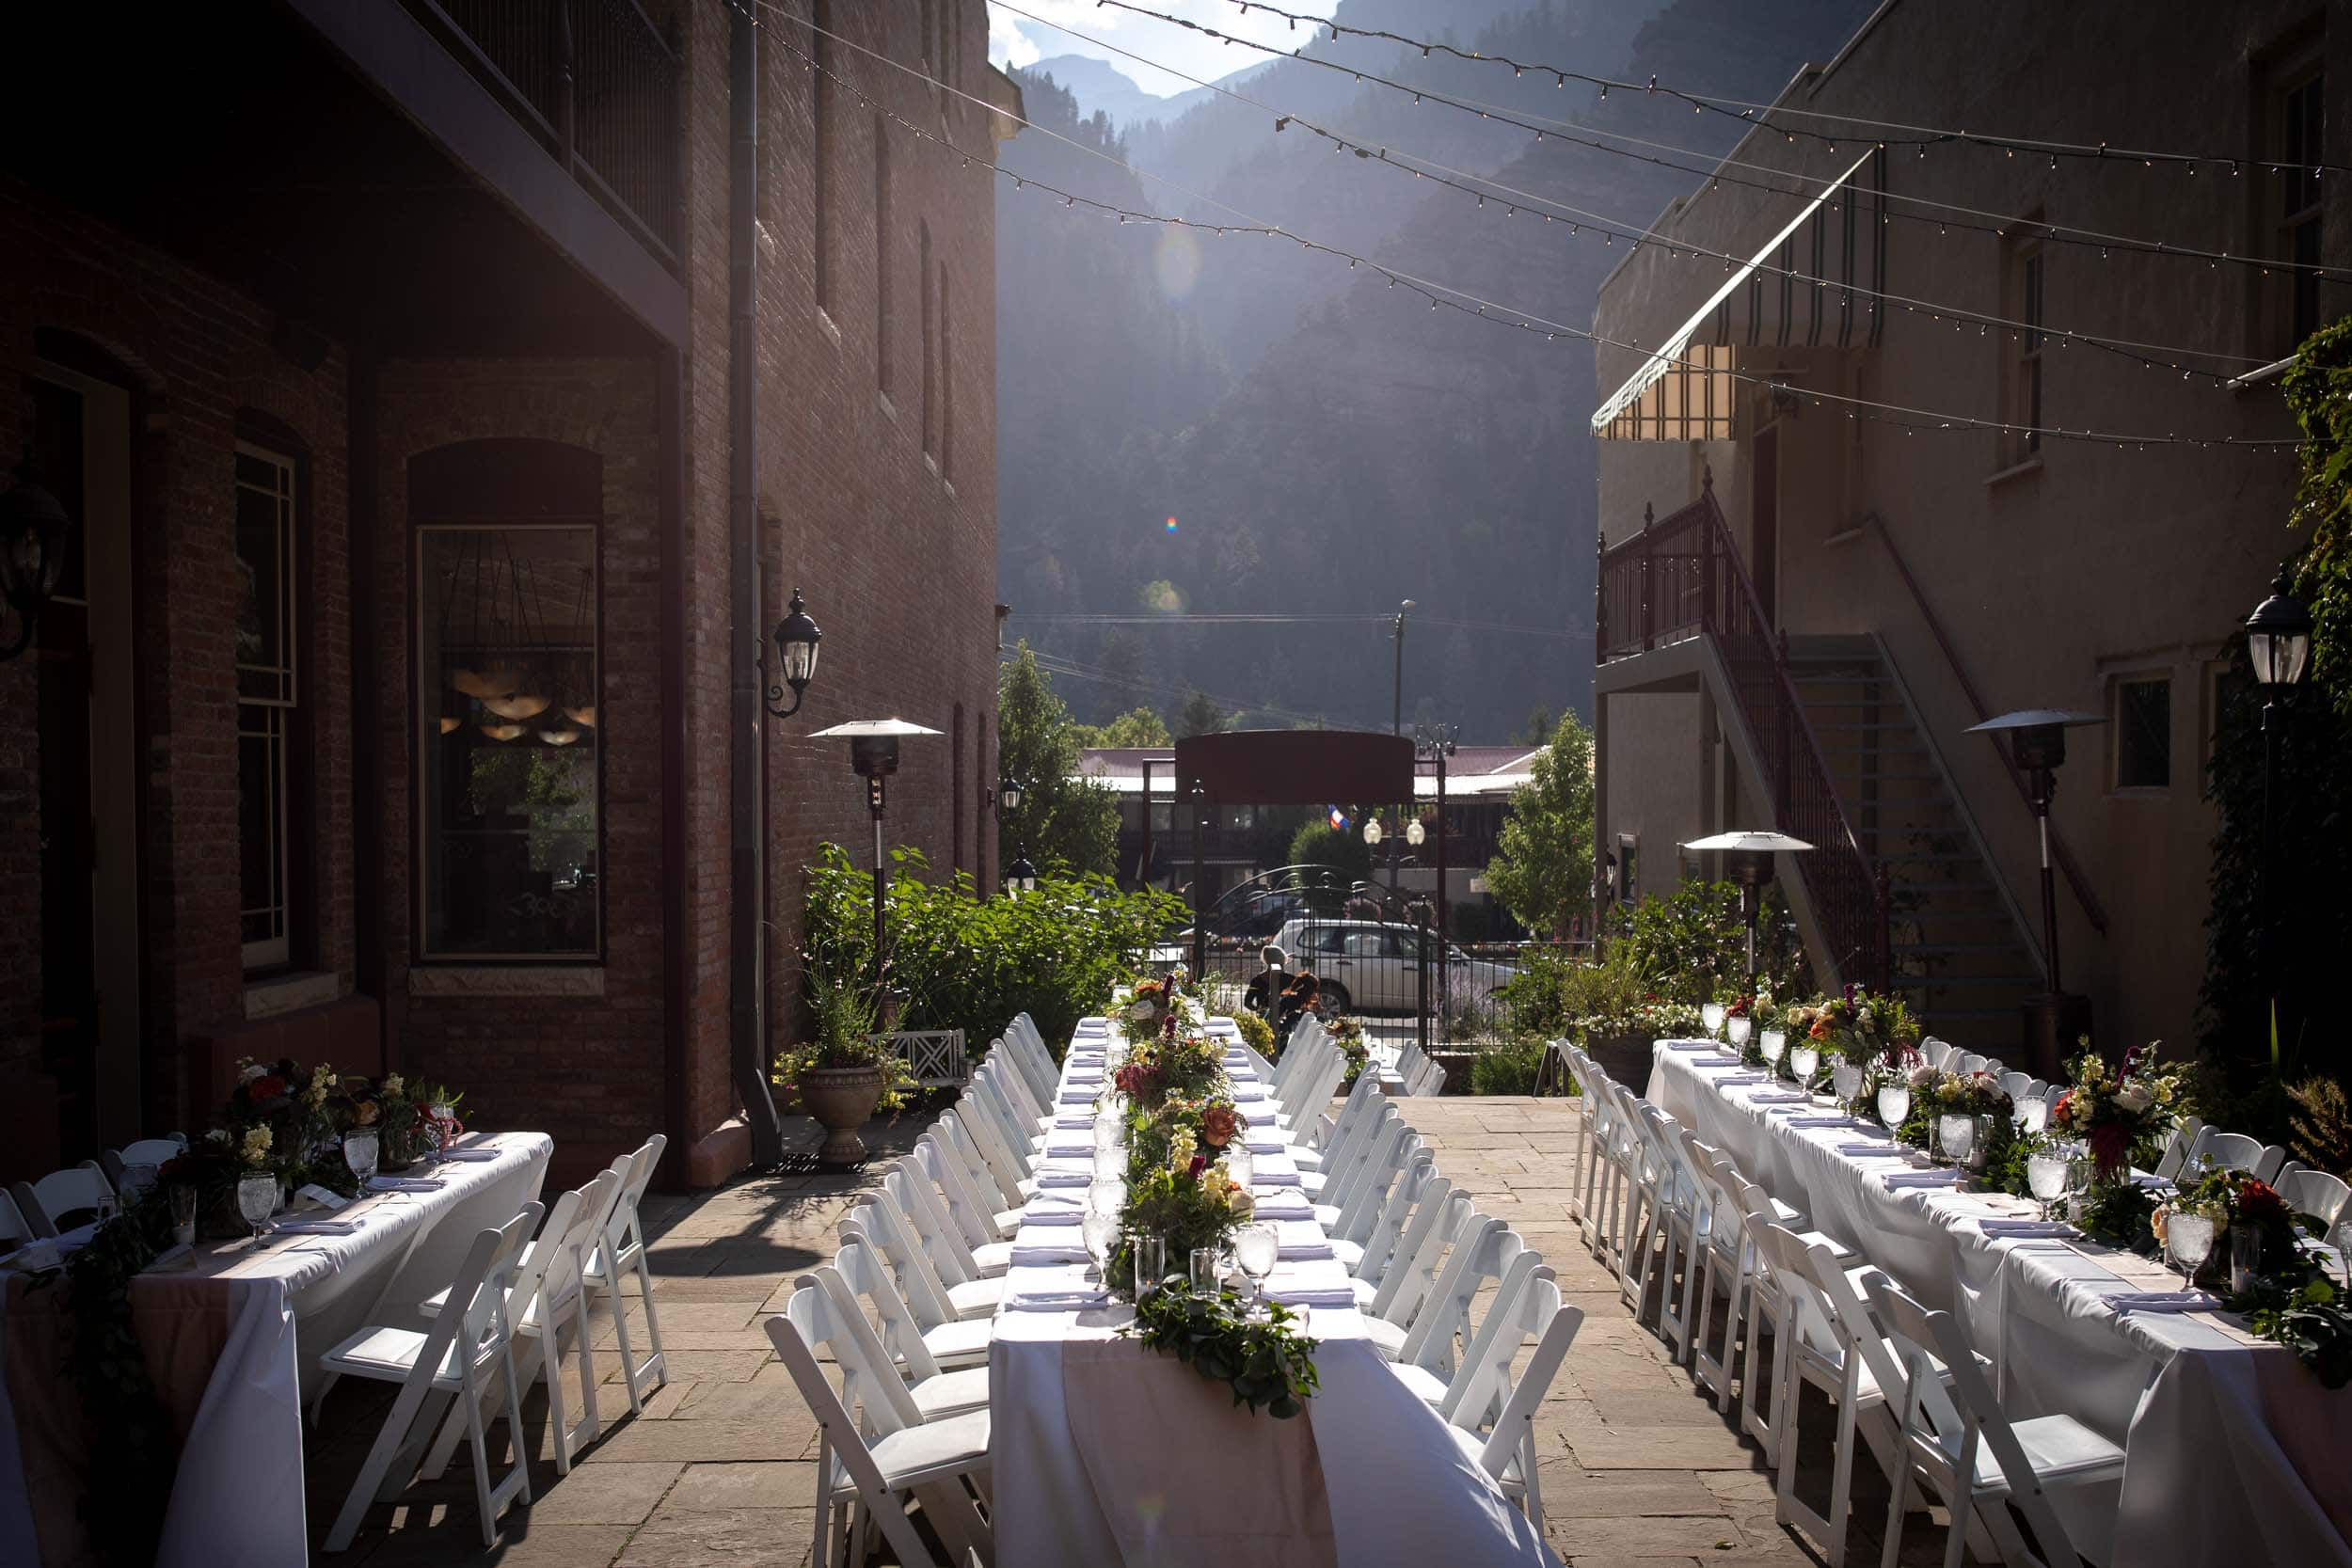 Wedding reception at the Beaumont Hotel in Ouray, CO